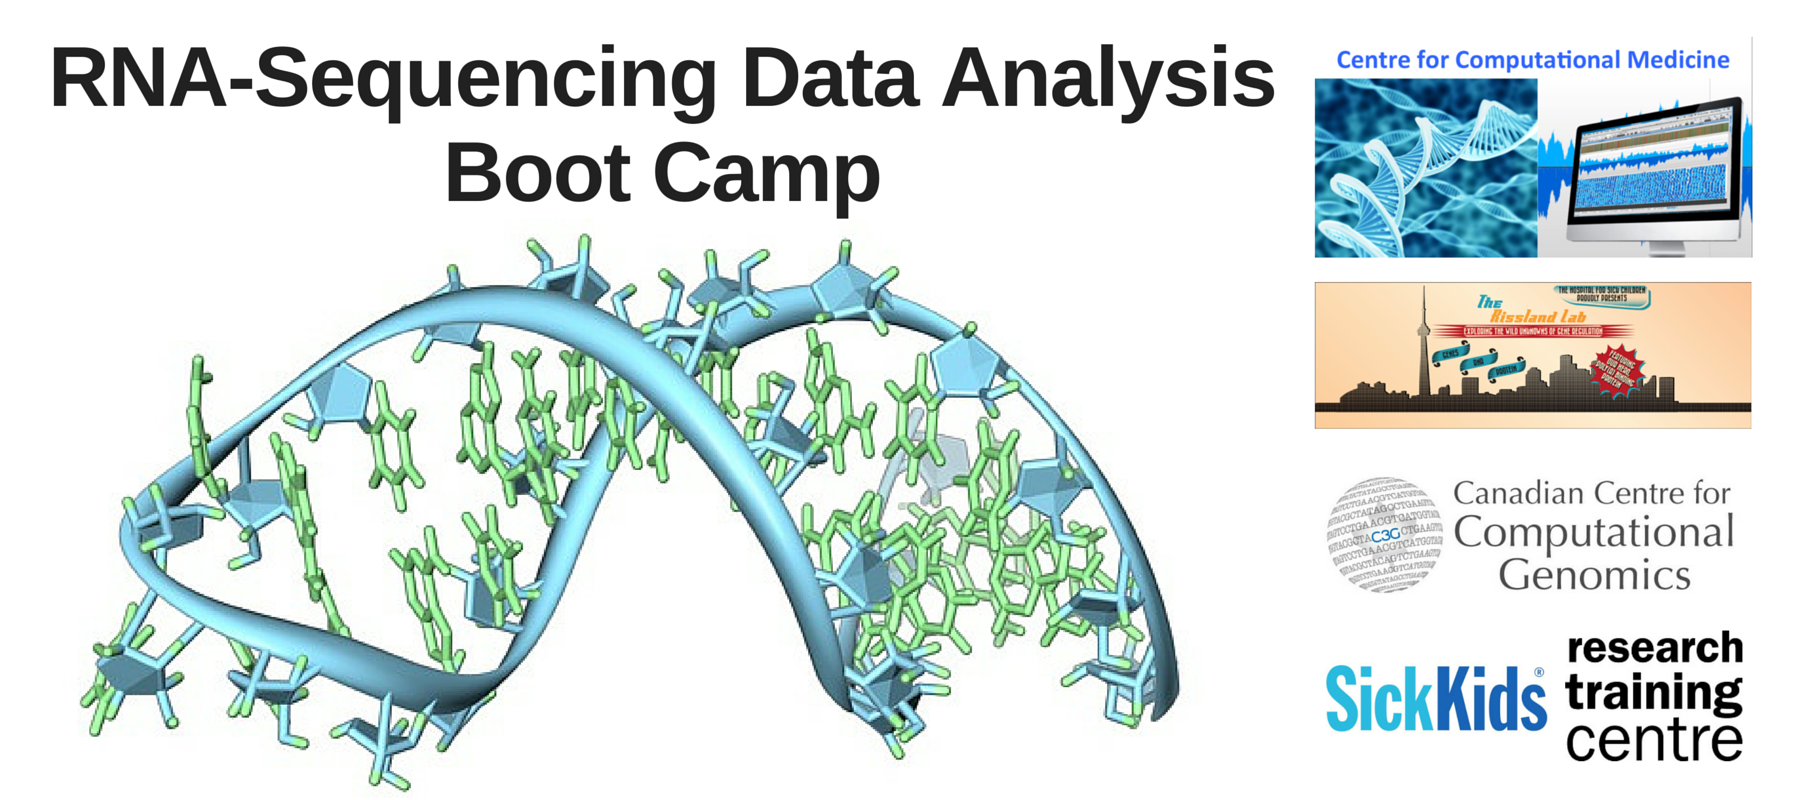 RNA-Sequencing Data Analysis Boot Camp